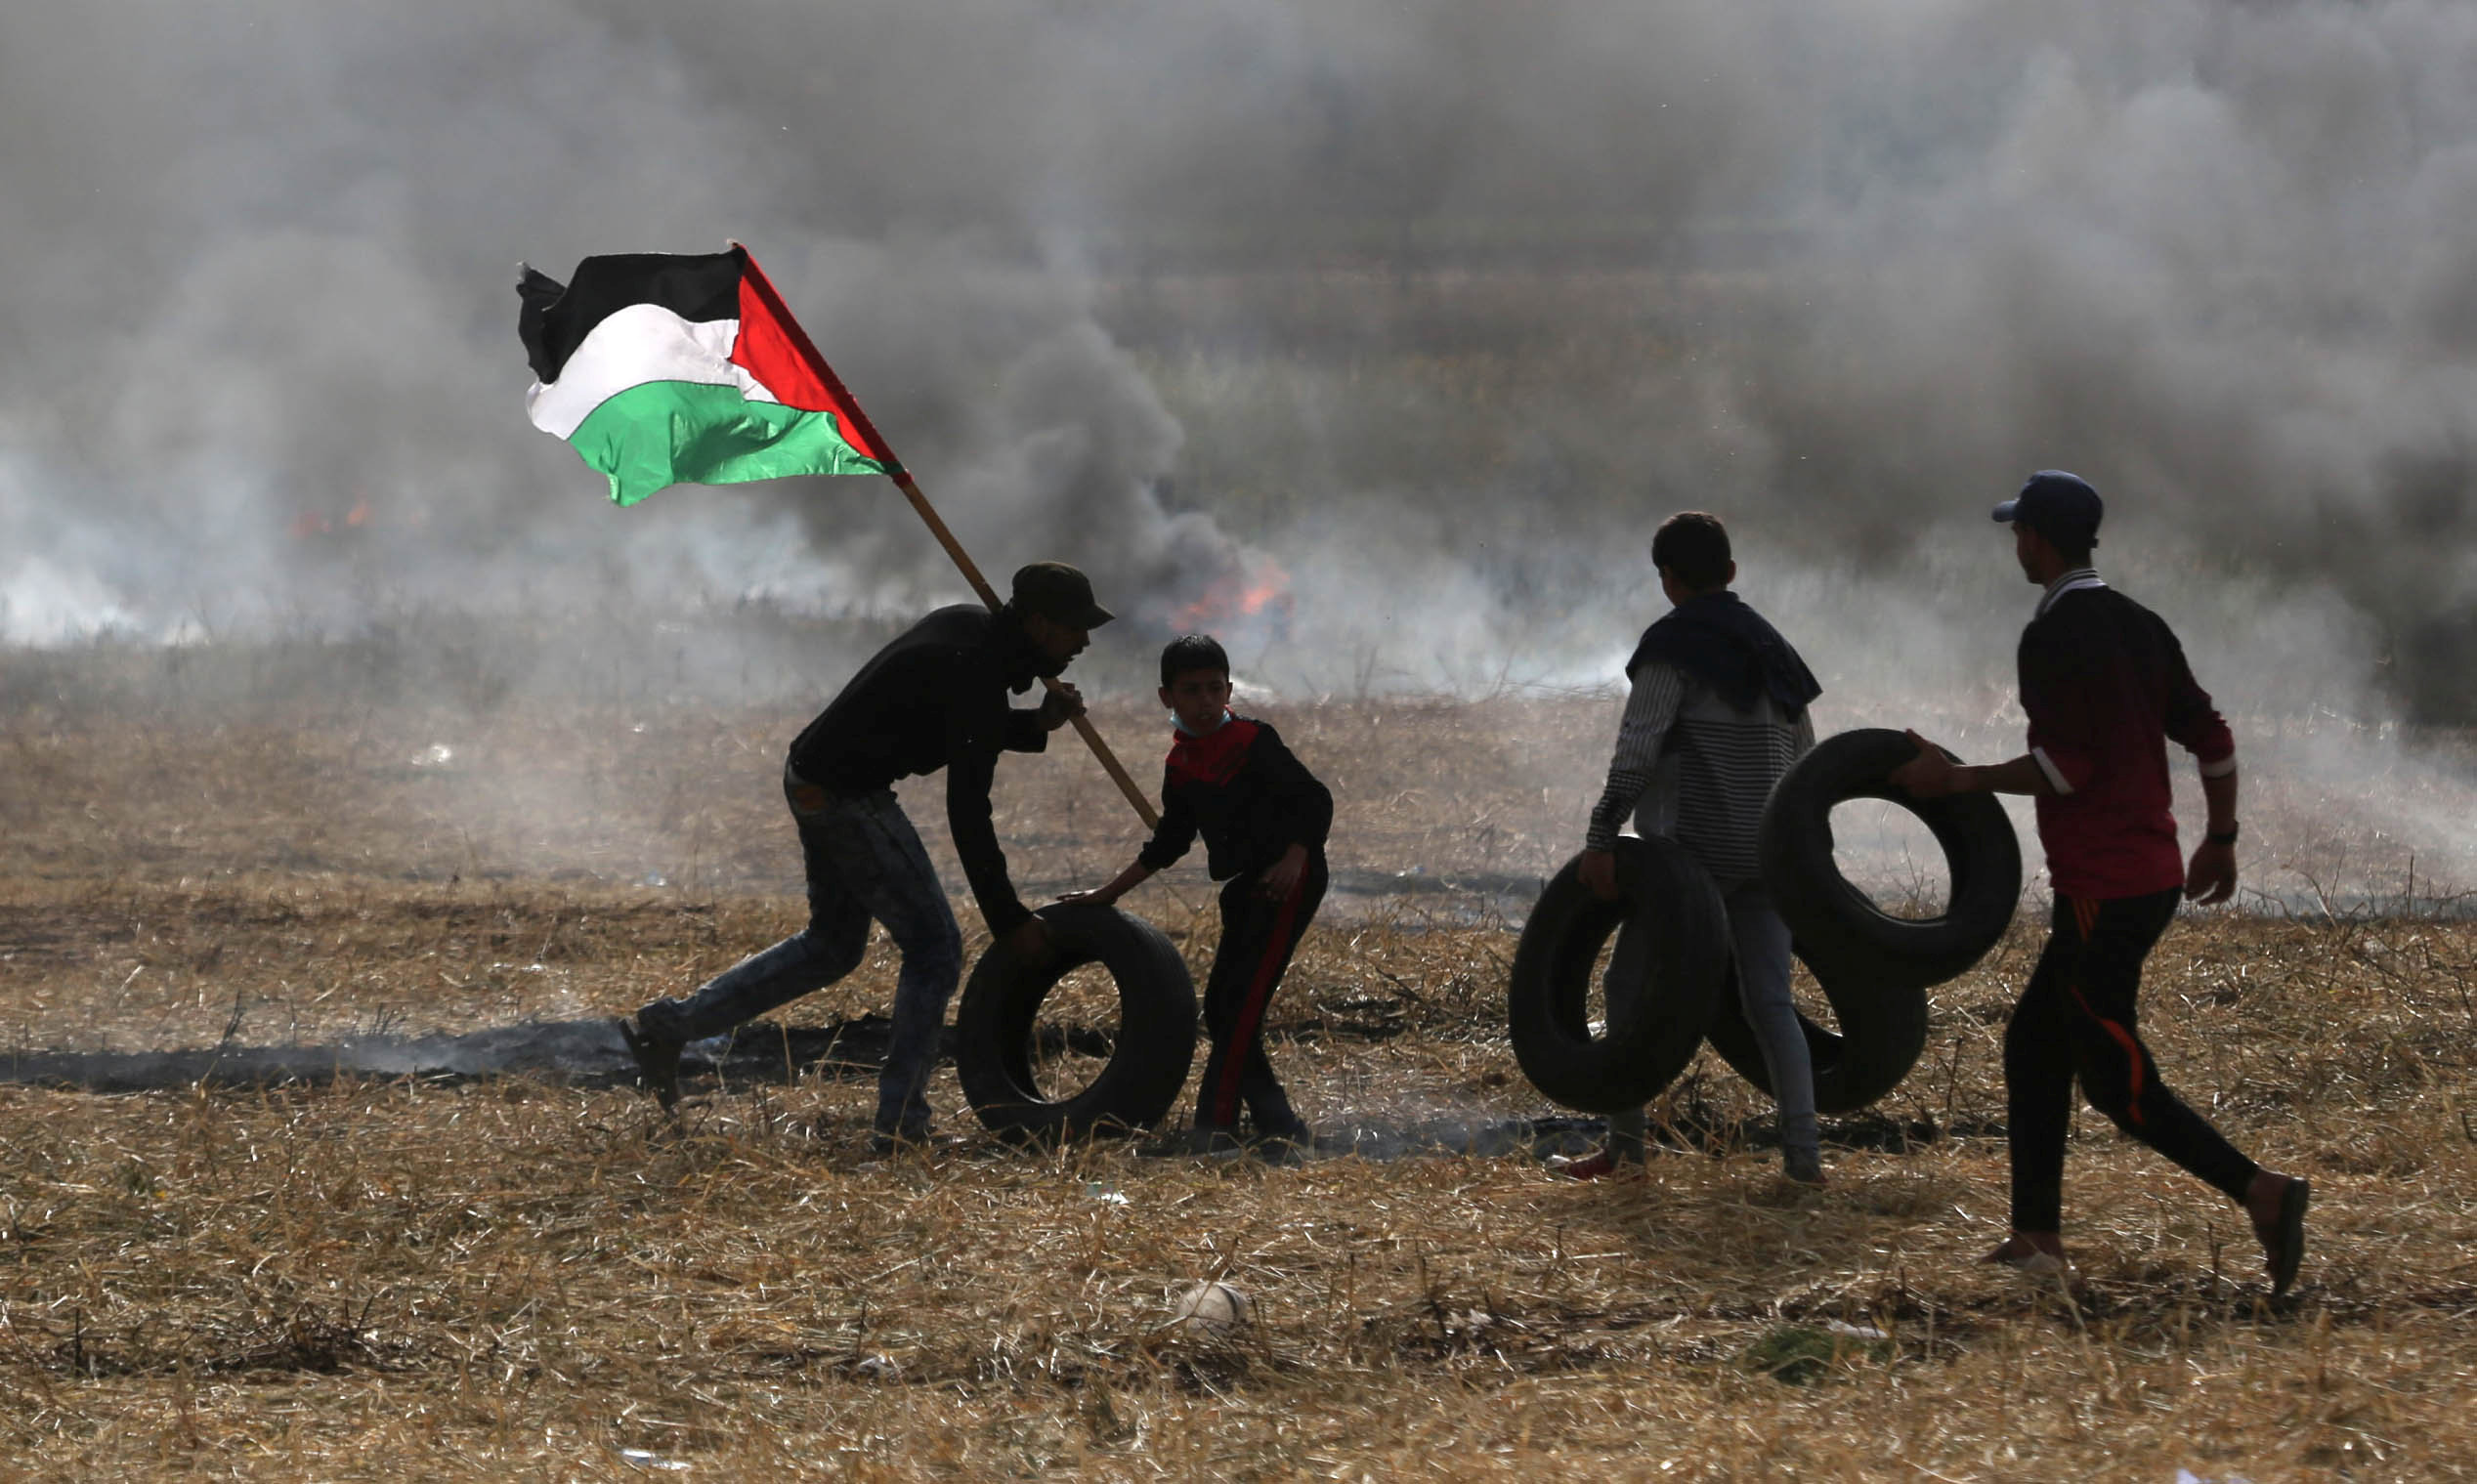 Palestinian protesters carry tires to burn them during clashes with Israeli troops at Israel-Gaza border, in the southern Gaza Strip April 5, 2018. REUTERS/Ibraheem Abu Mustafa